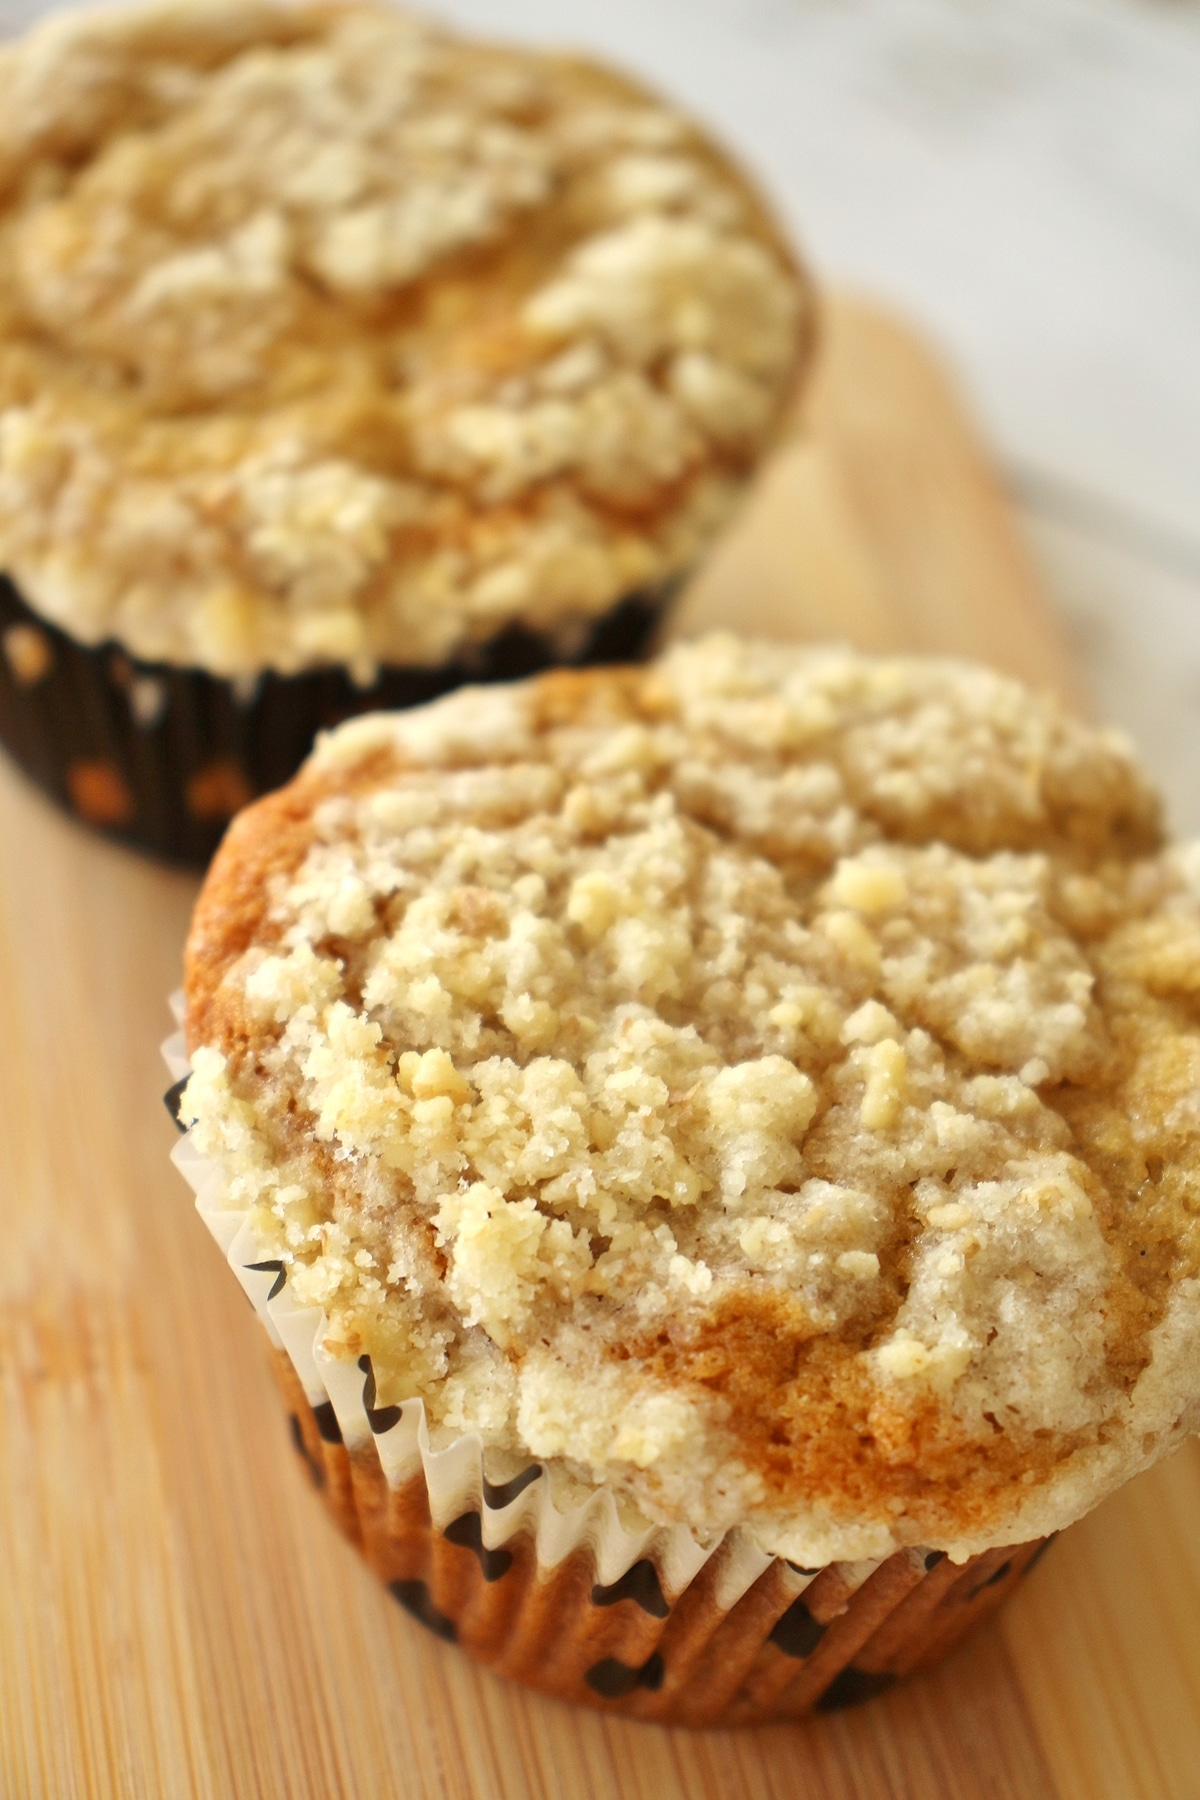 Two bakery style banana muffins on a small wooden board.